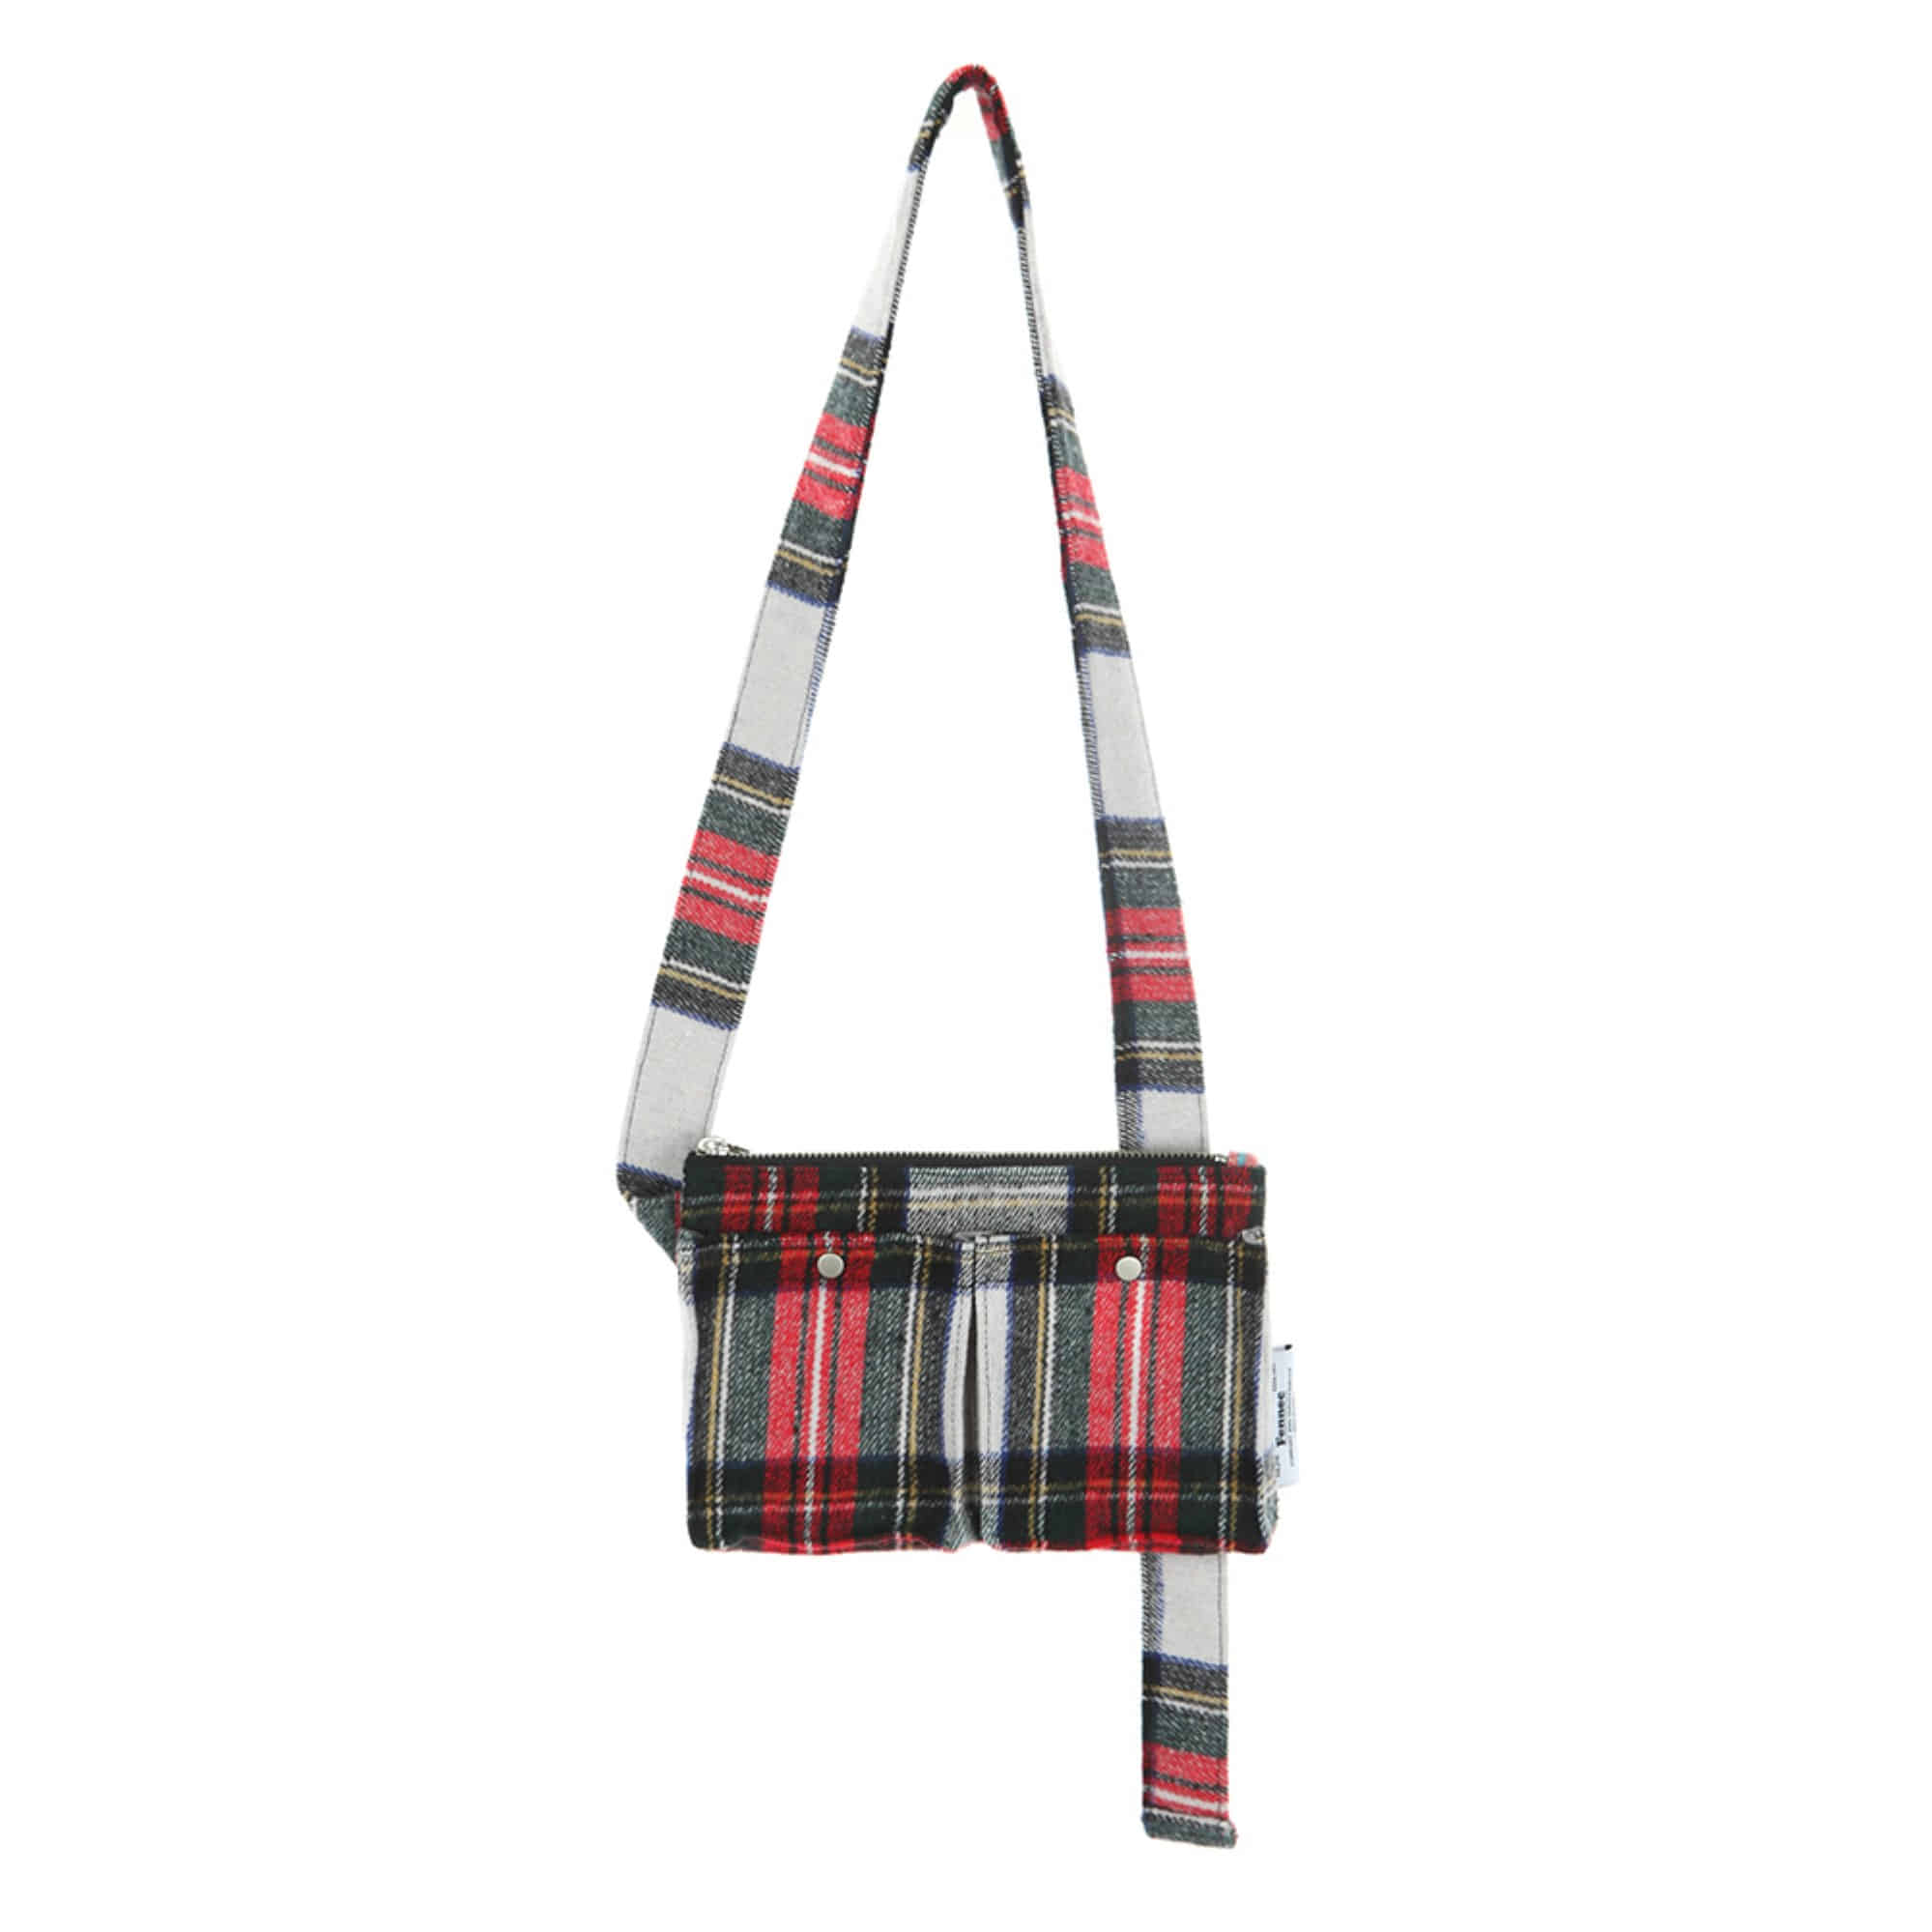 [DISCONTINUE] C&S CHECK BODY BAG - RED